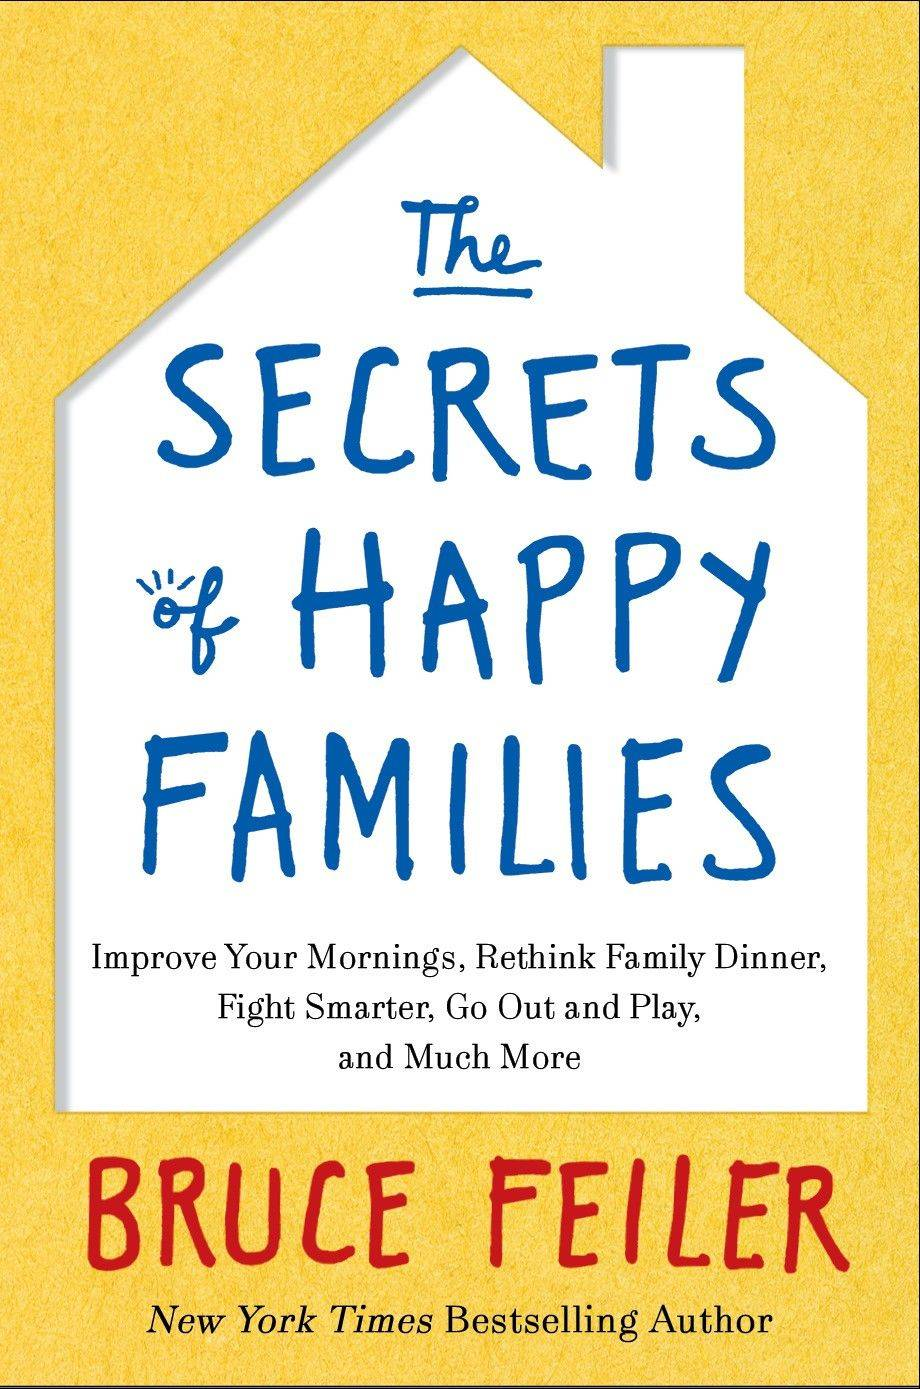 """The Secrets of Happy Families: Improve Your Mornings, Rethink Family Dinner, Fight Smarter, Go Out and Play, and Much More"" by Bruce Feiler"